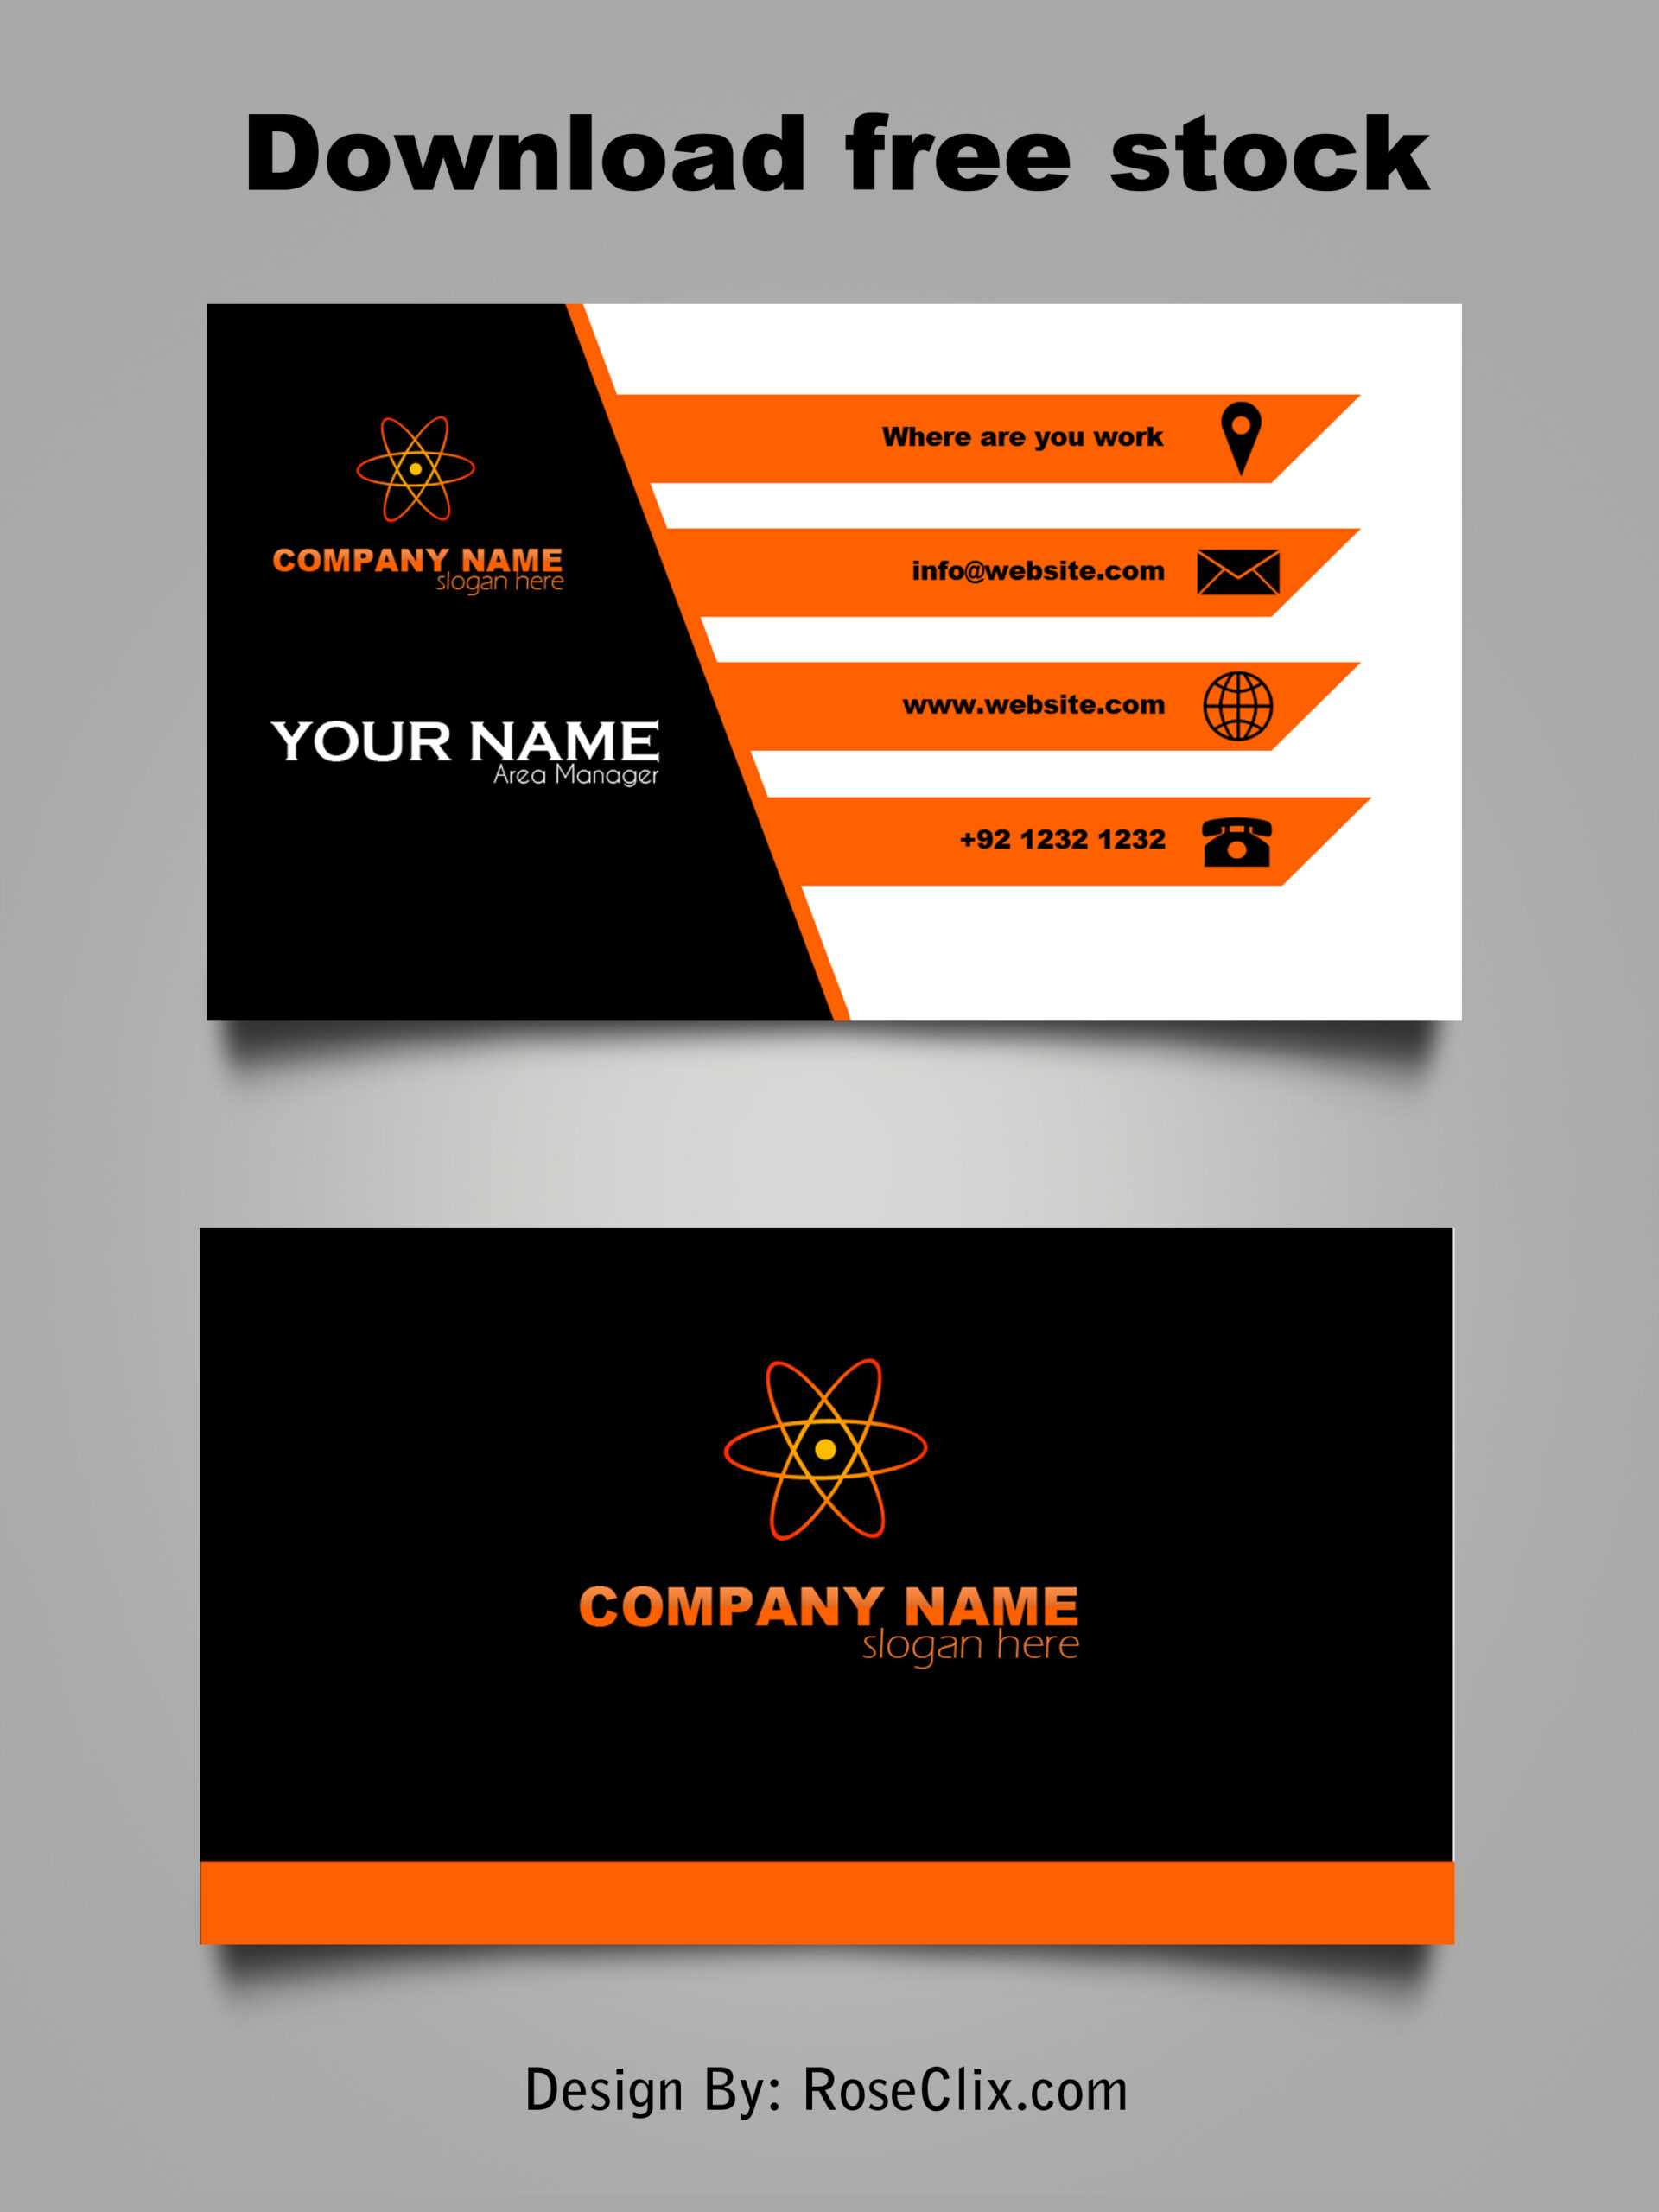 New Pictures Of Business Card Template Powerpoint Free Intended For Business Card Template Powerpoint Free